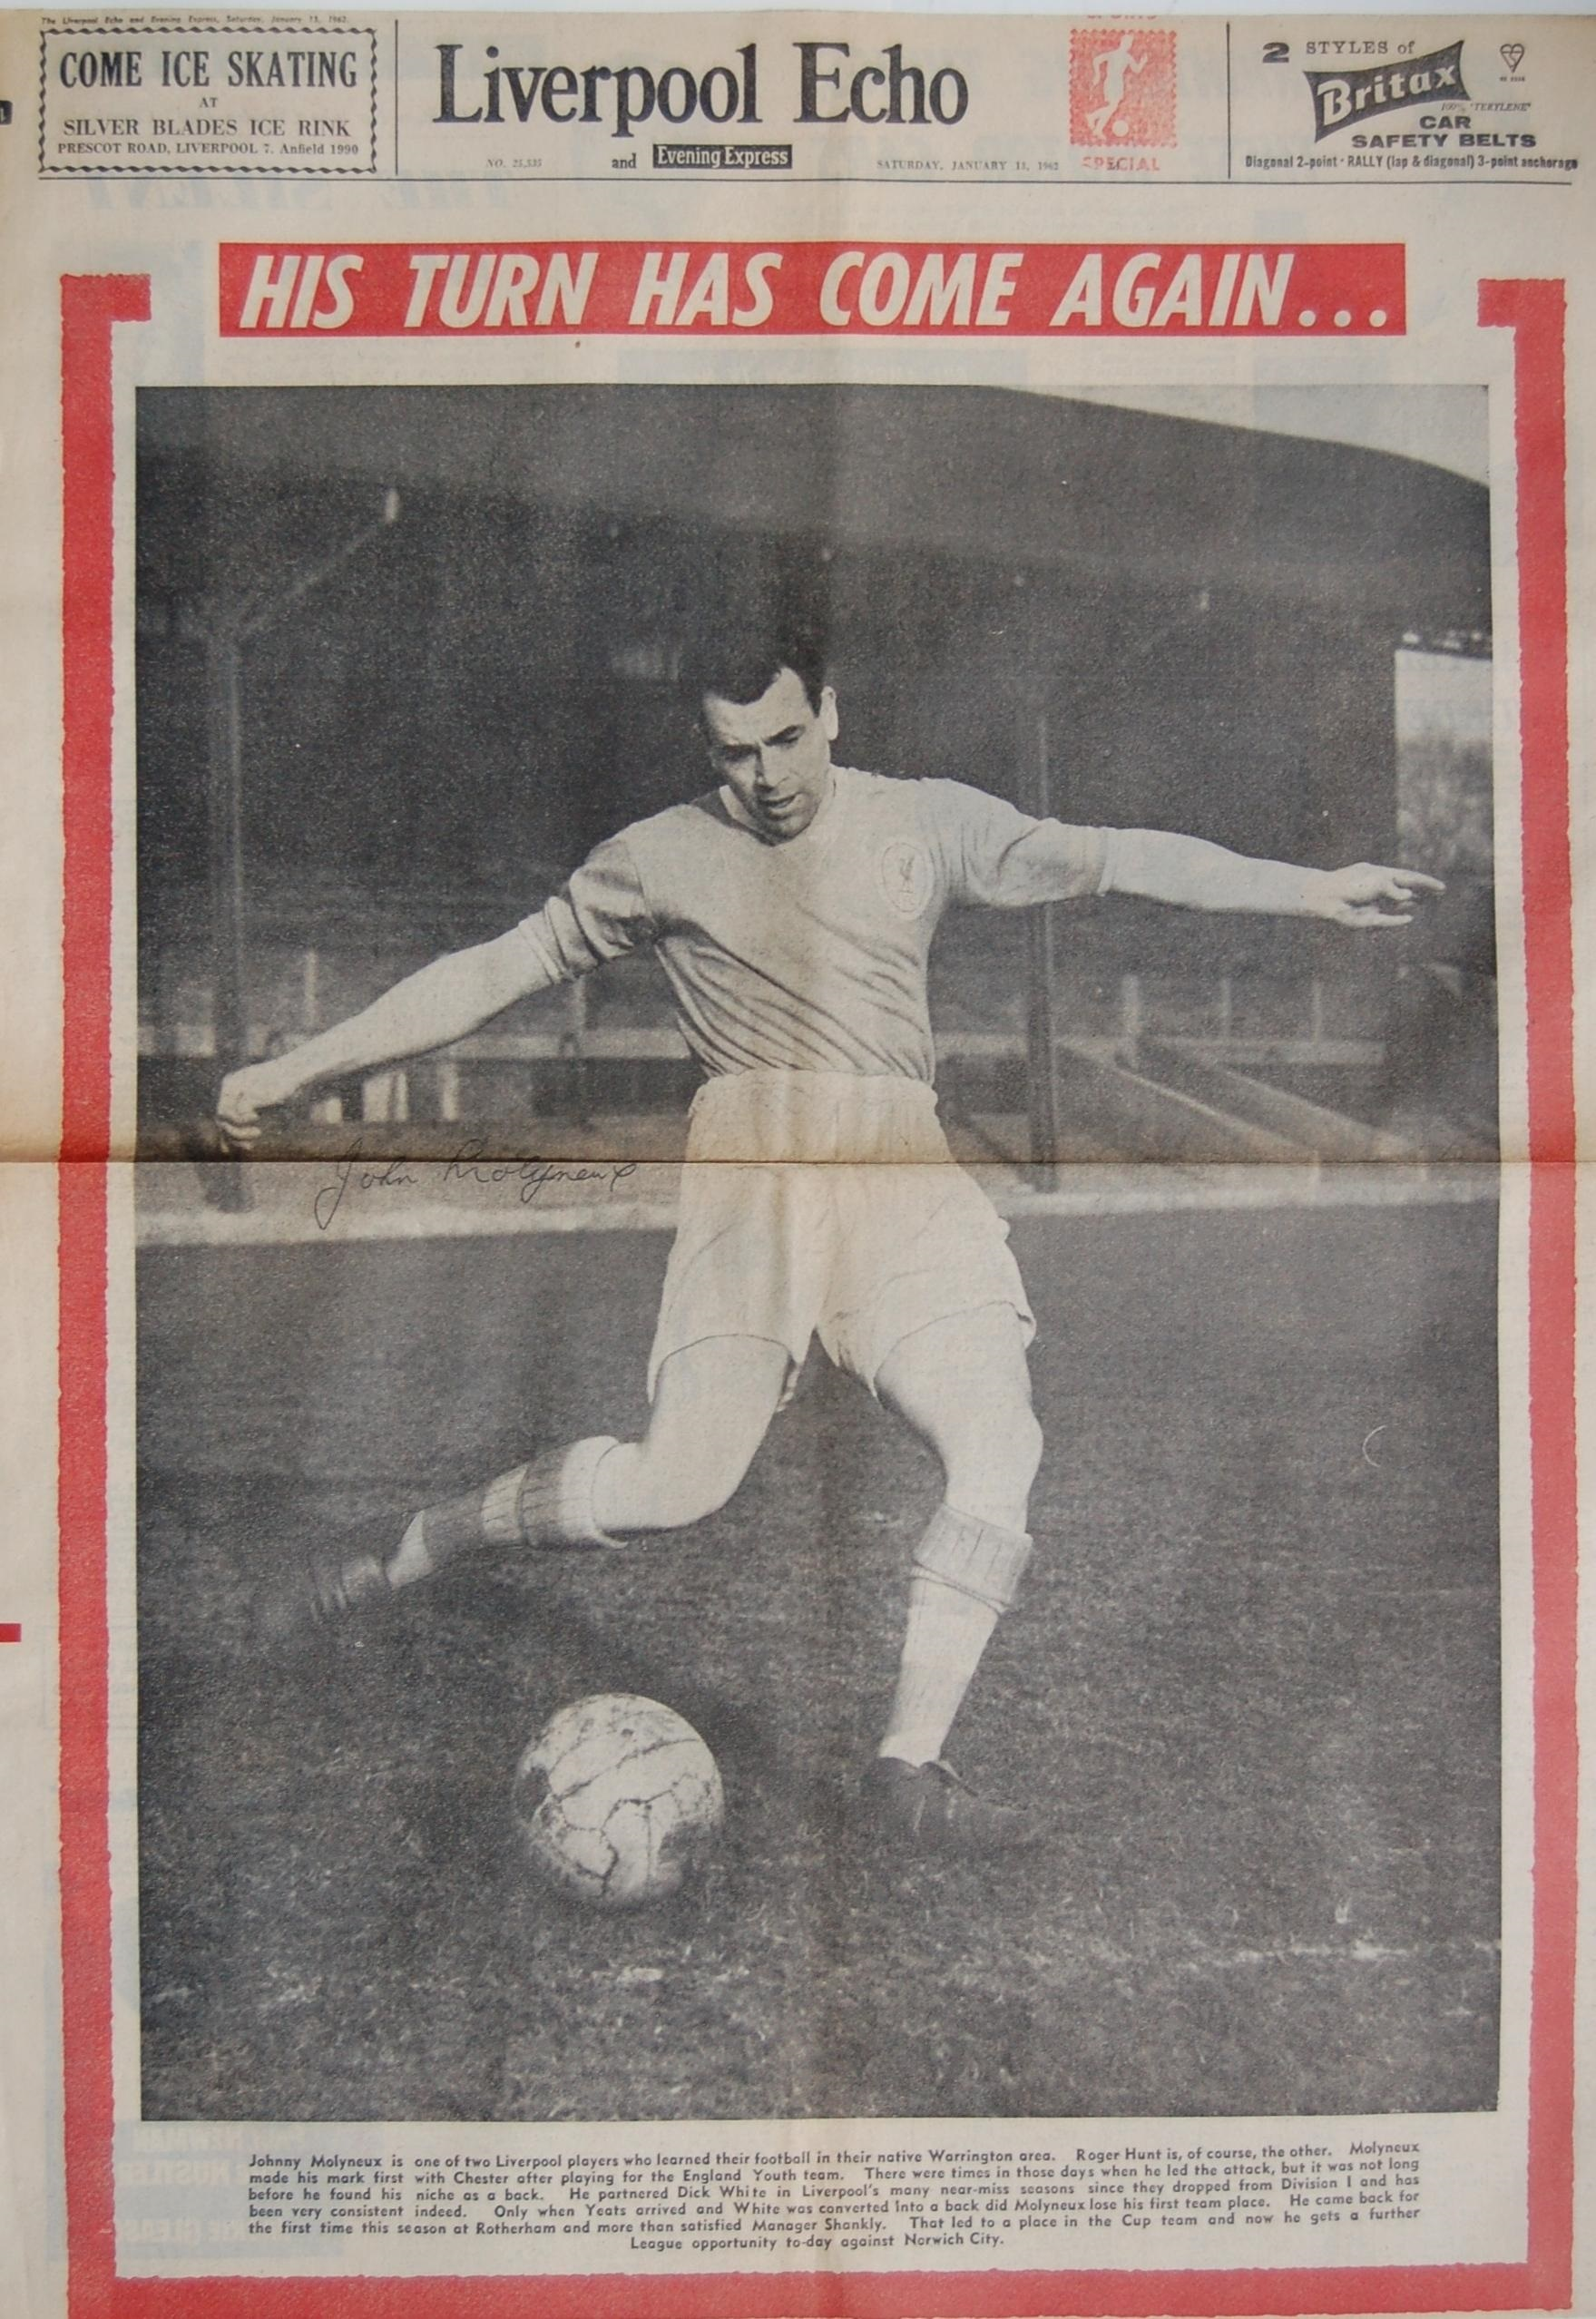 Molyneux on the front page of the Echo on 13 January 1962